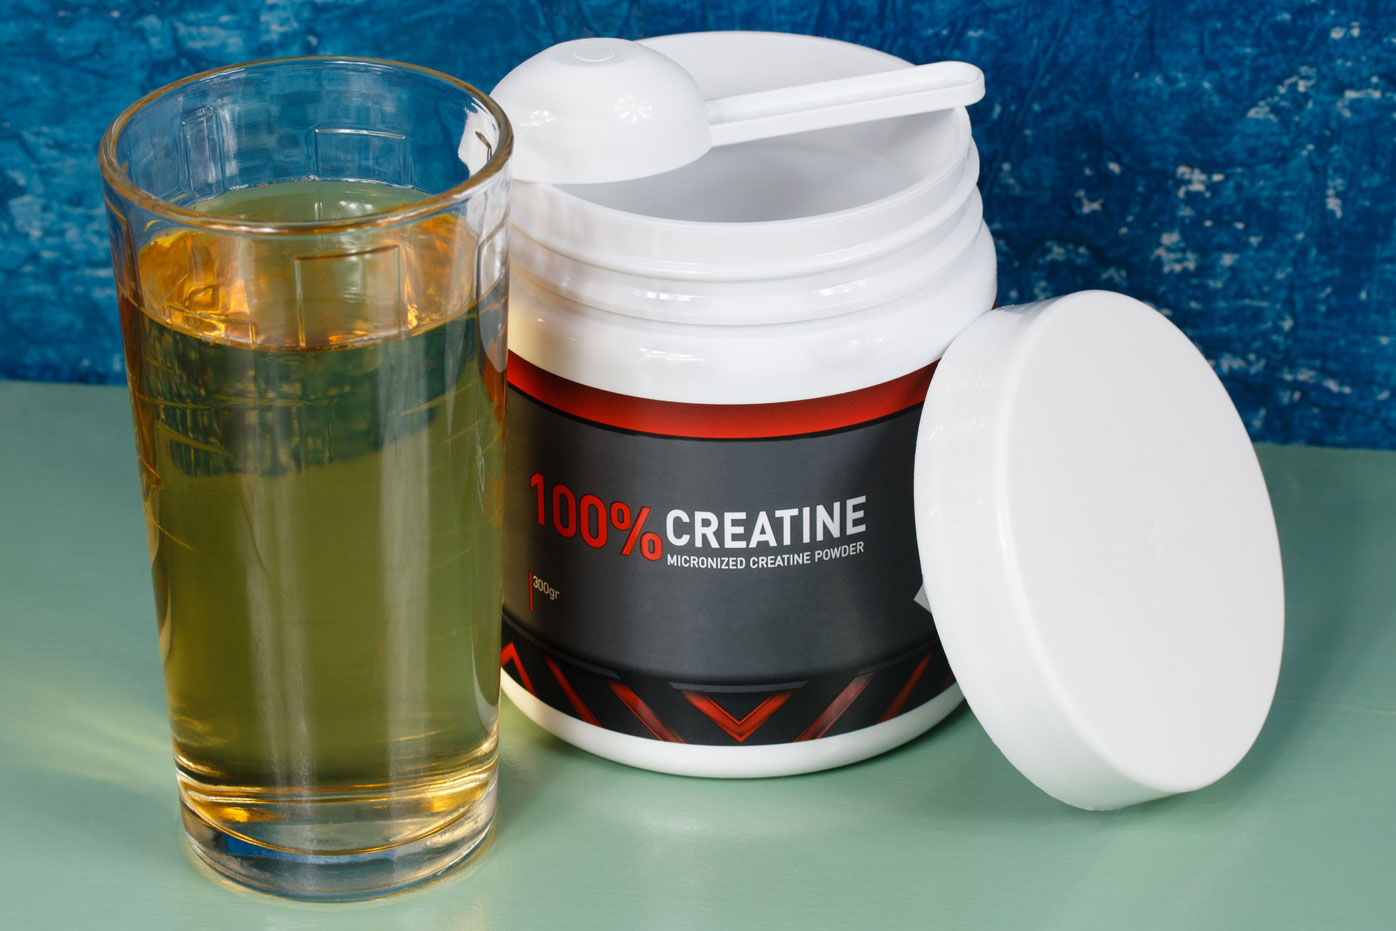 Creatine monohydrate: Works